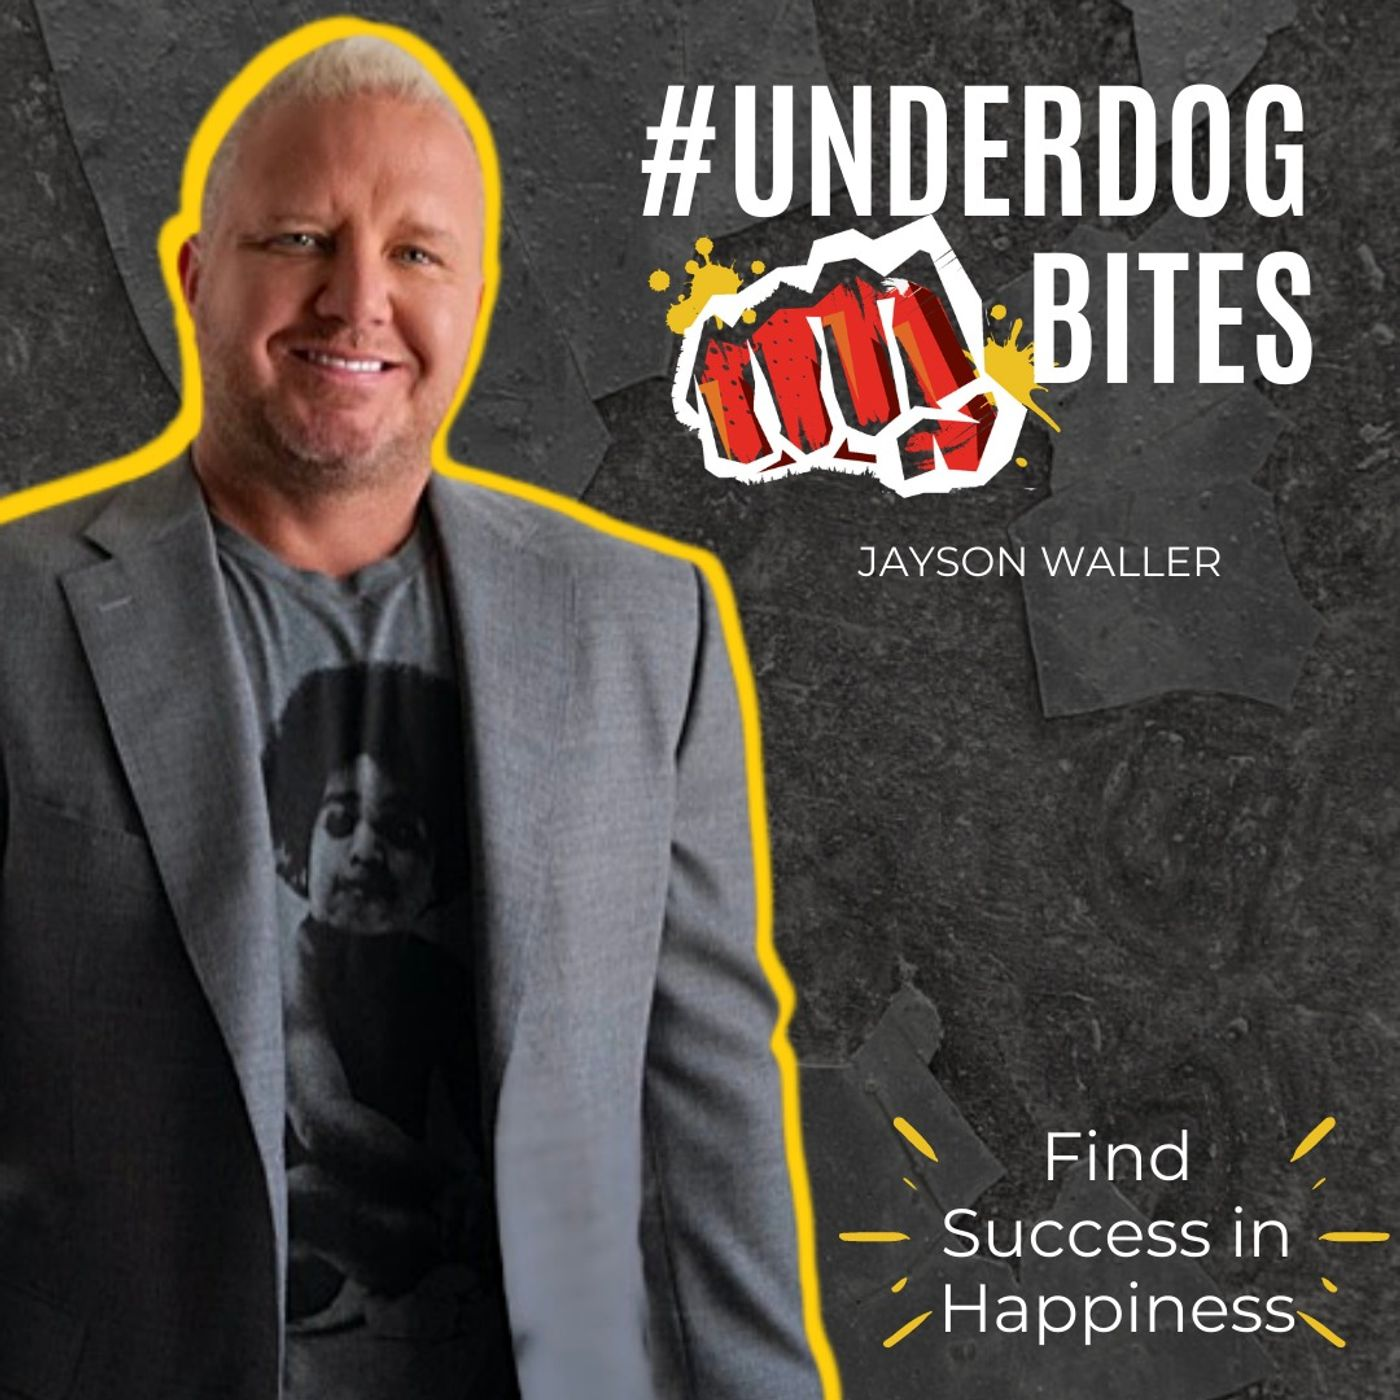 #UnderdogBites: Find Success in Happiness